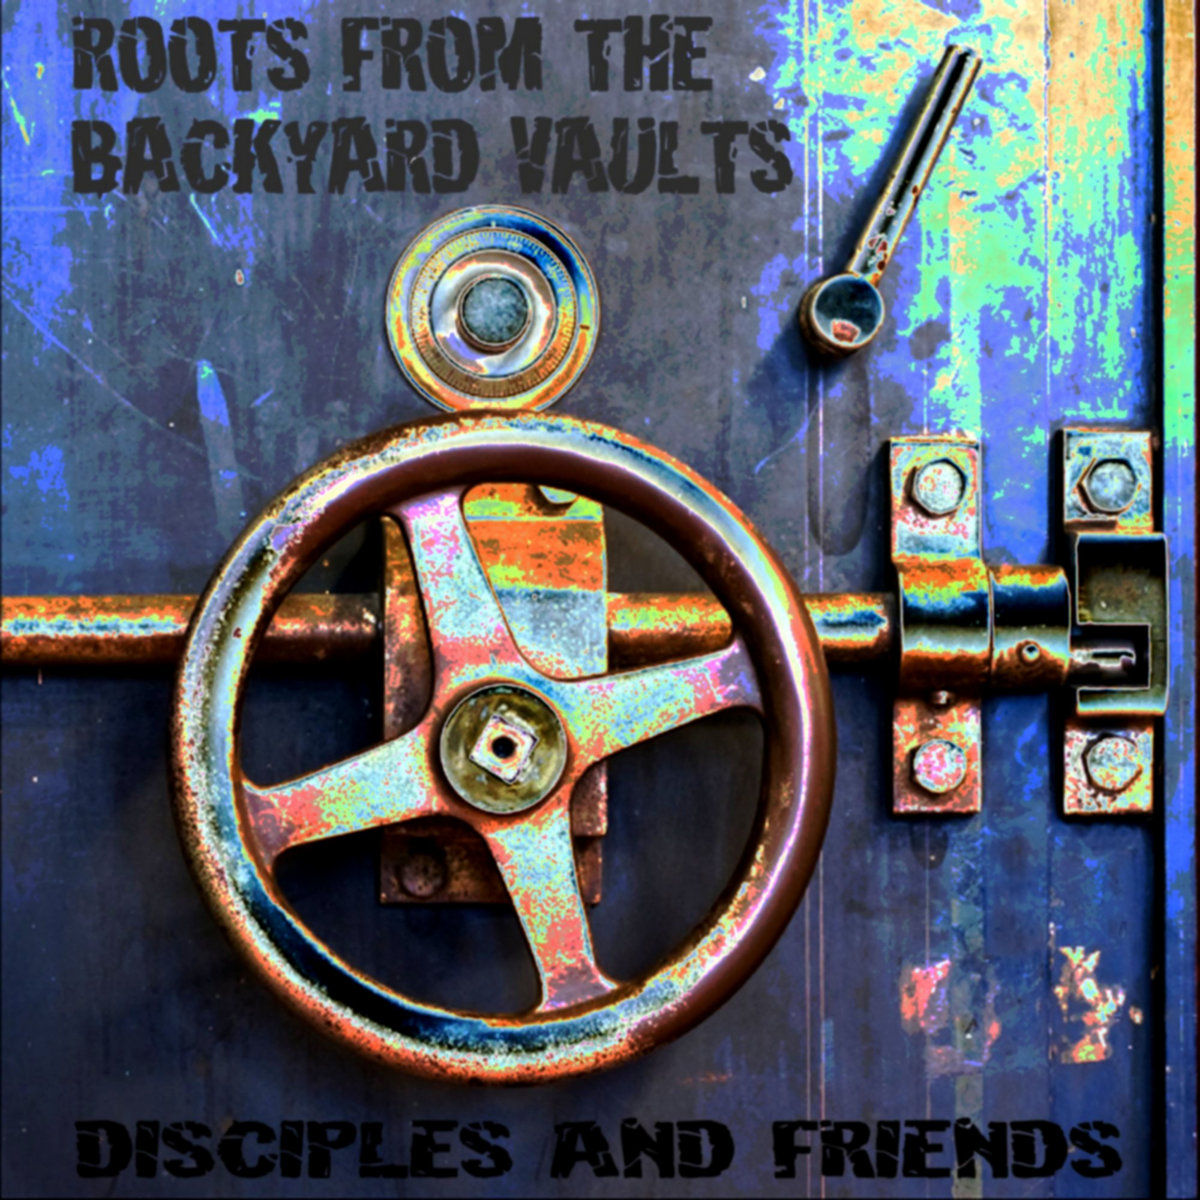 roots from the backyard vaults the disciples